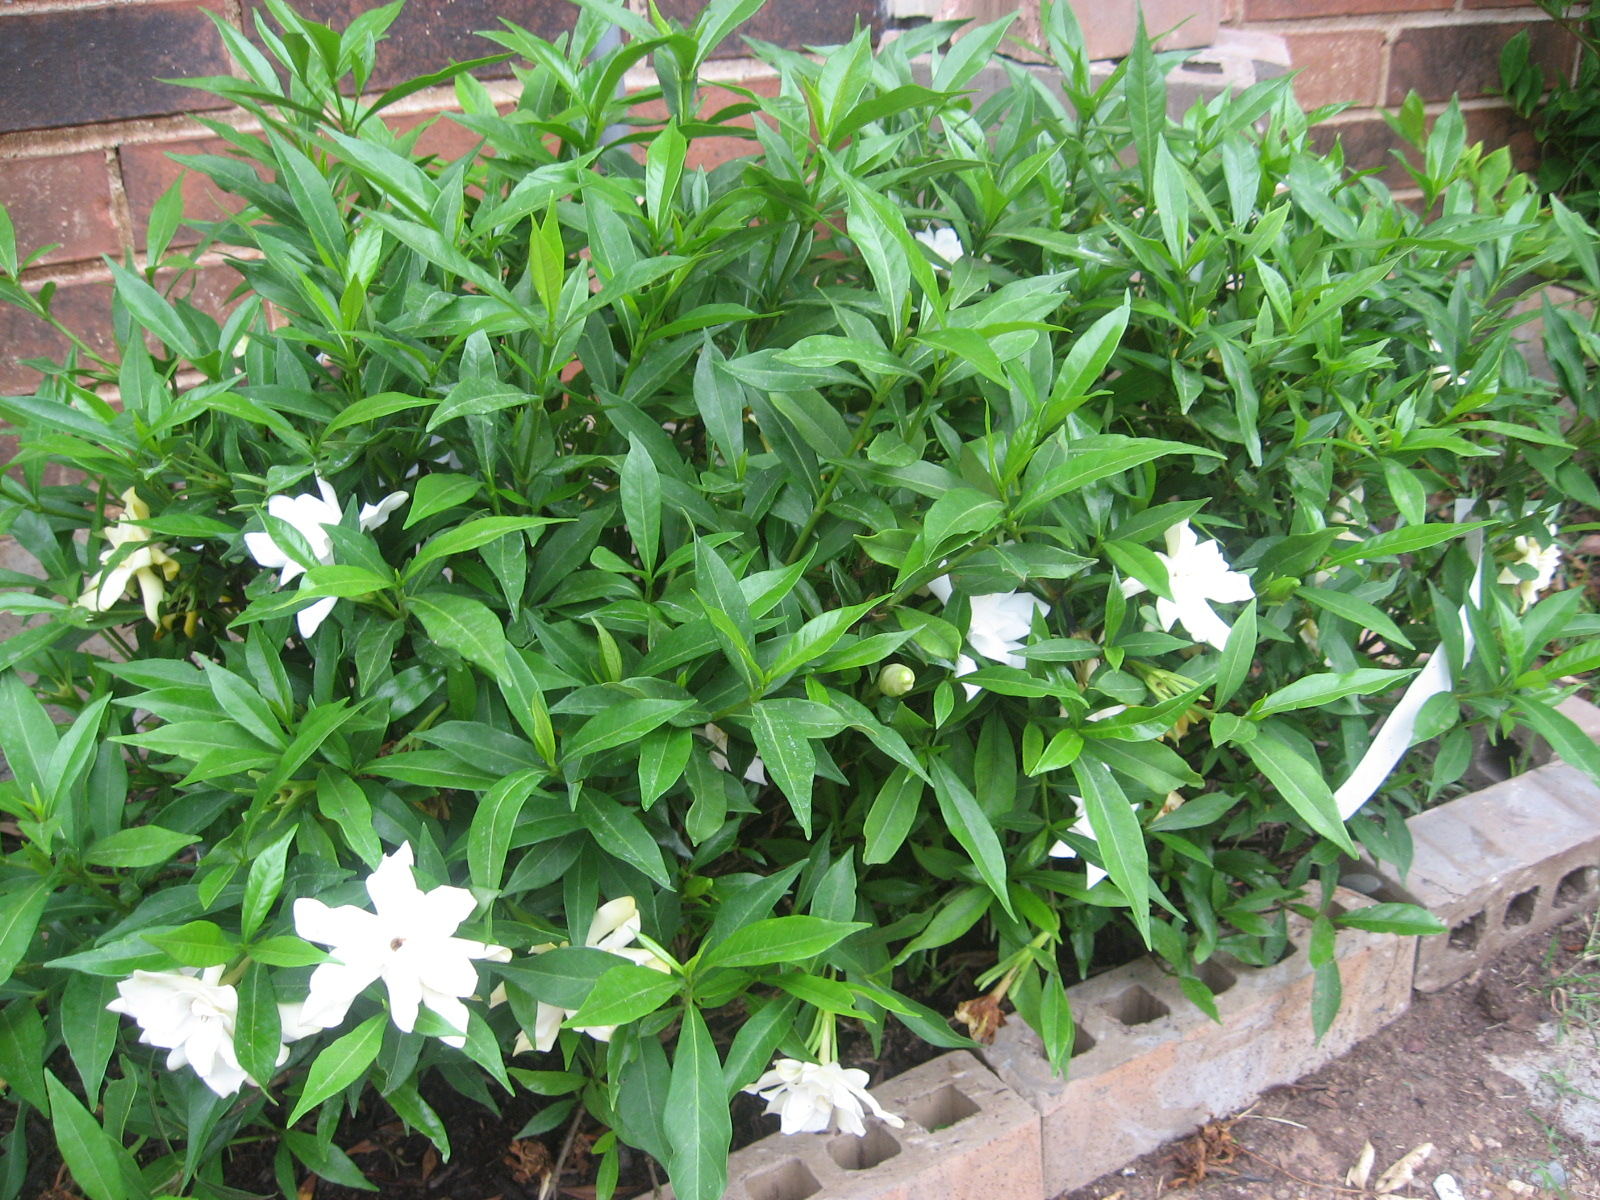 How to plant a gardenia -  Help With Gardenia Img_0002 Jpg